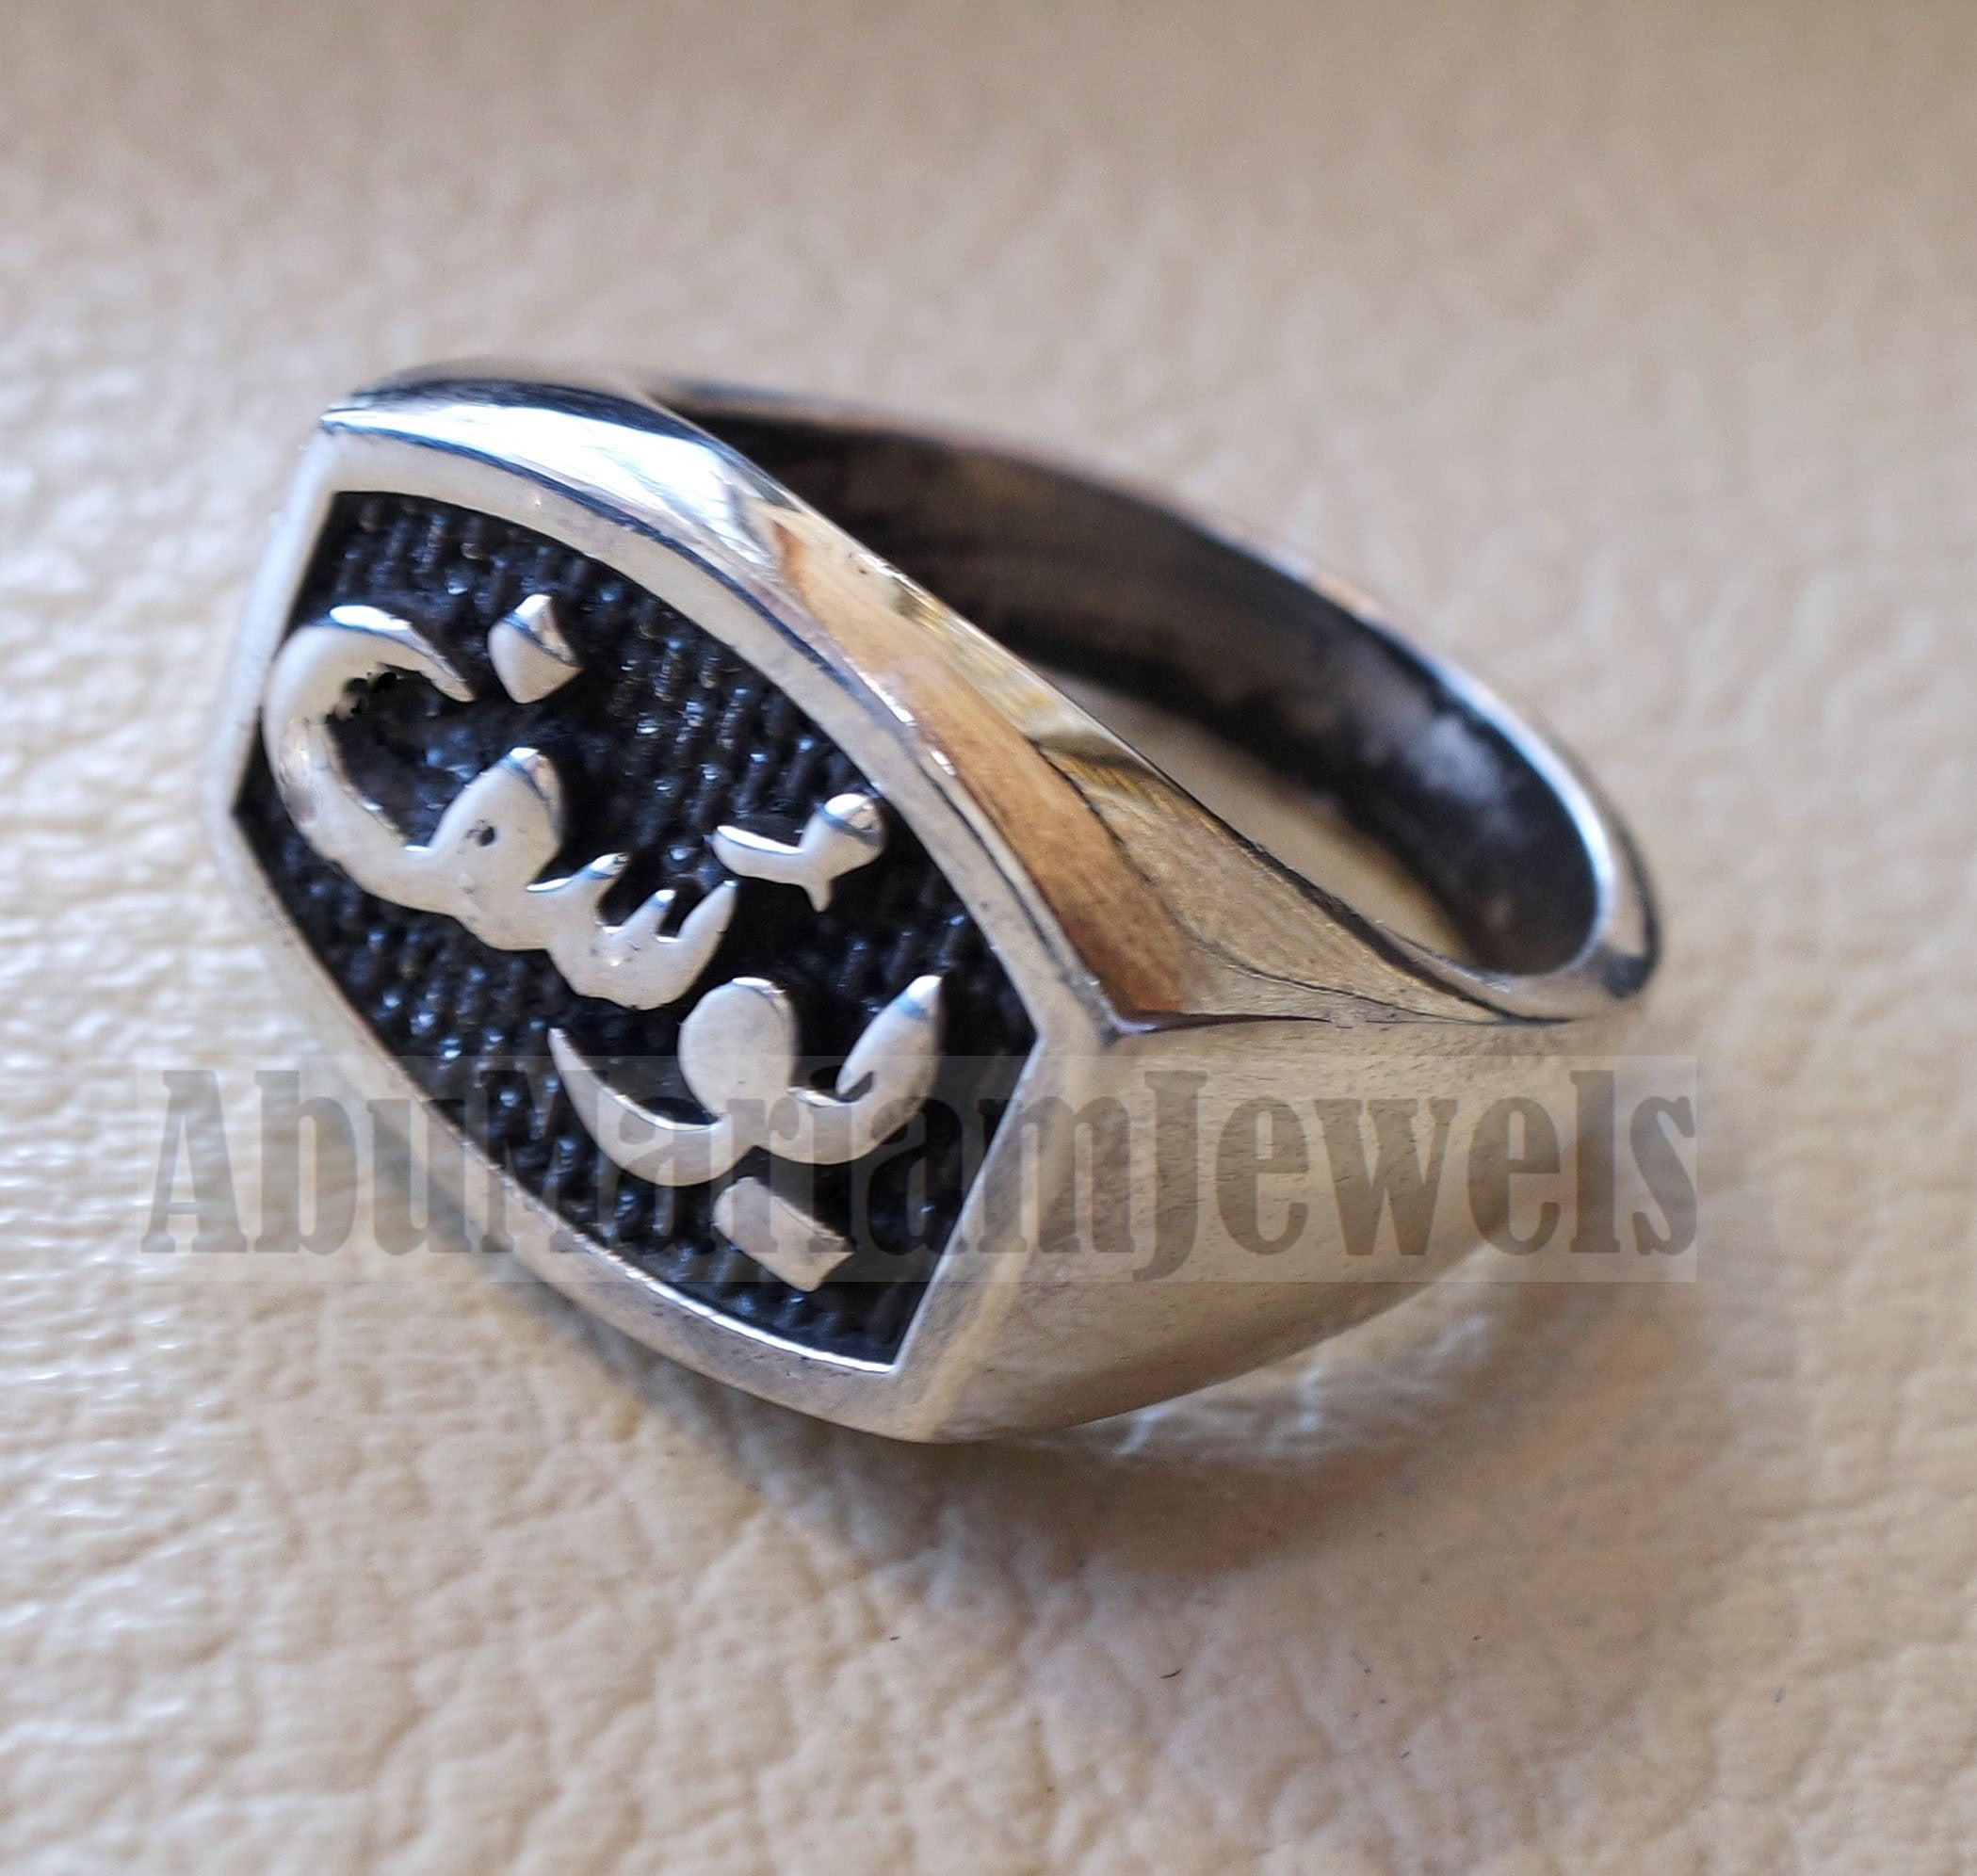 Name ring customized Arabic calligraphy one word personalized heavy all sizes jewelry style sterling silver 925 SN1003 خاتم اسم تفصيل